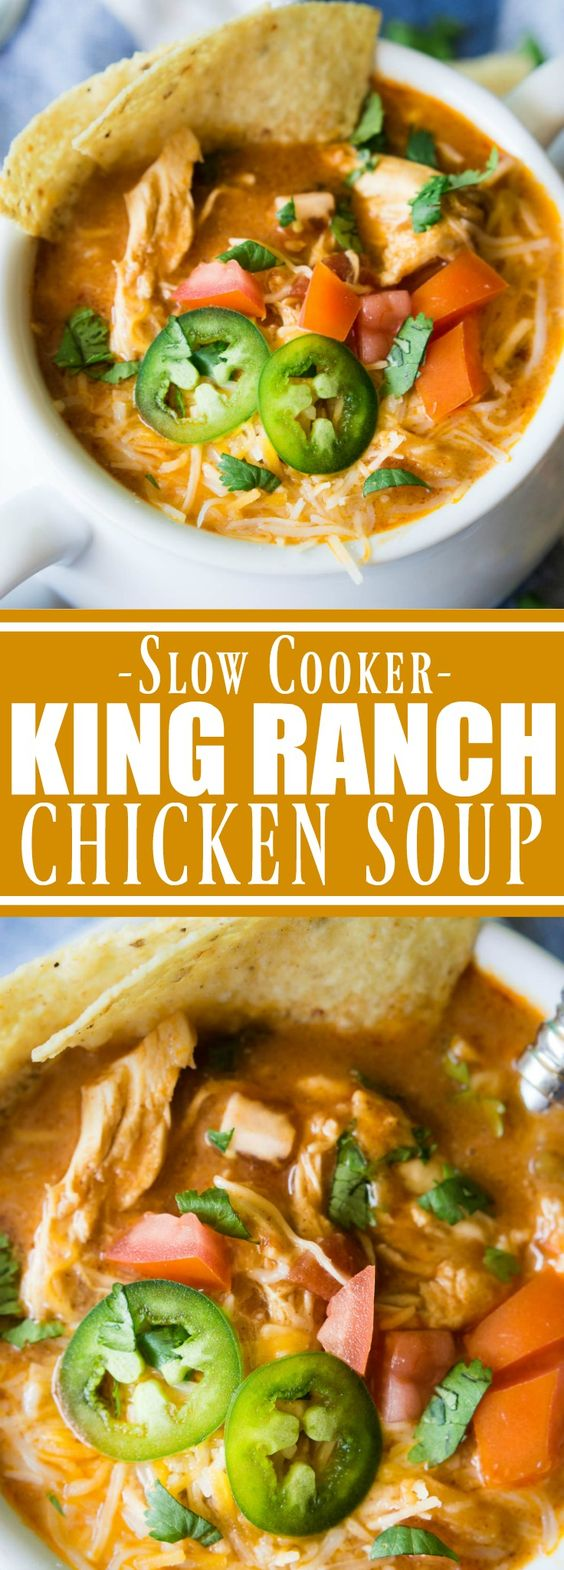 (SLOW COOKER) KING RANCH CHICKEN SOUP #SOUP #SLOWCOOKER